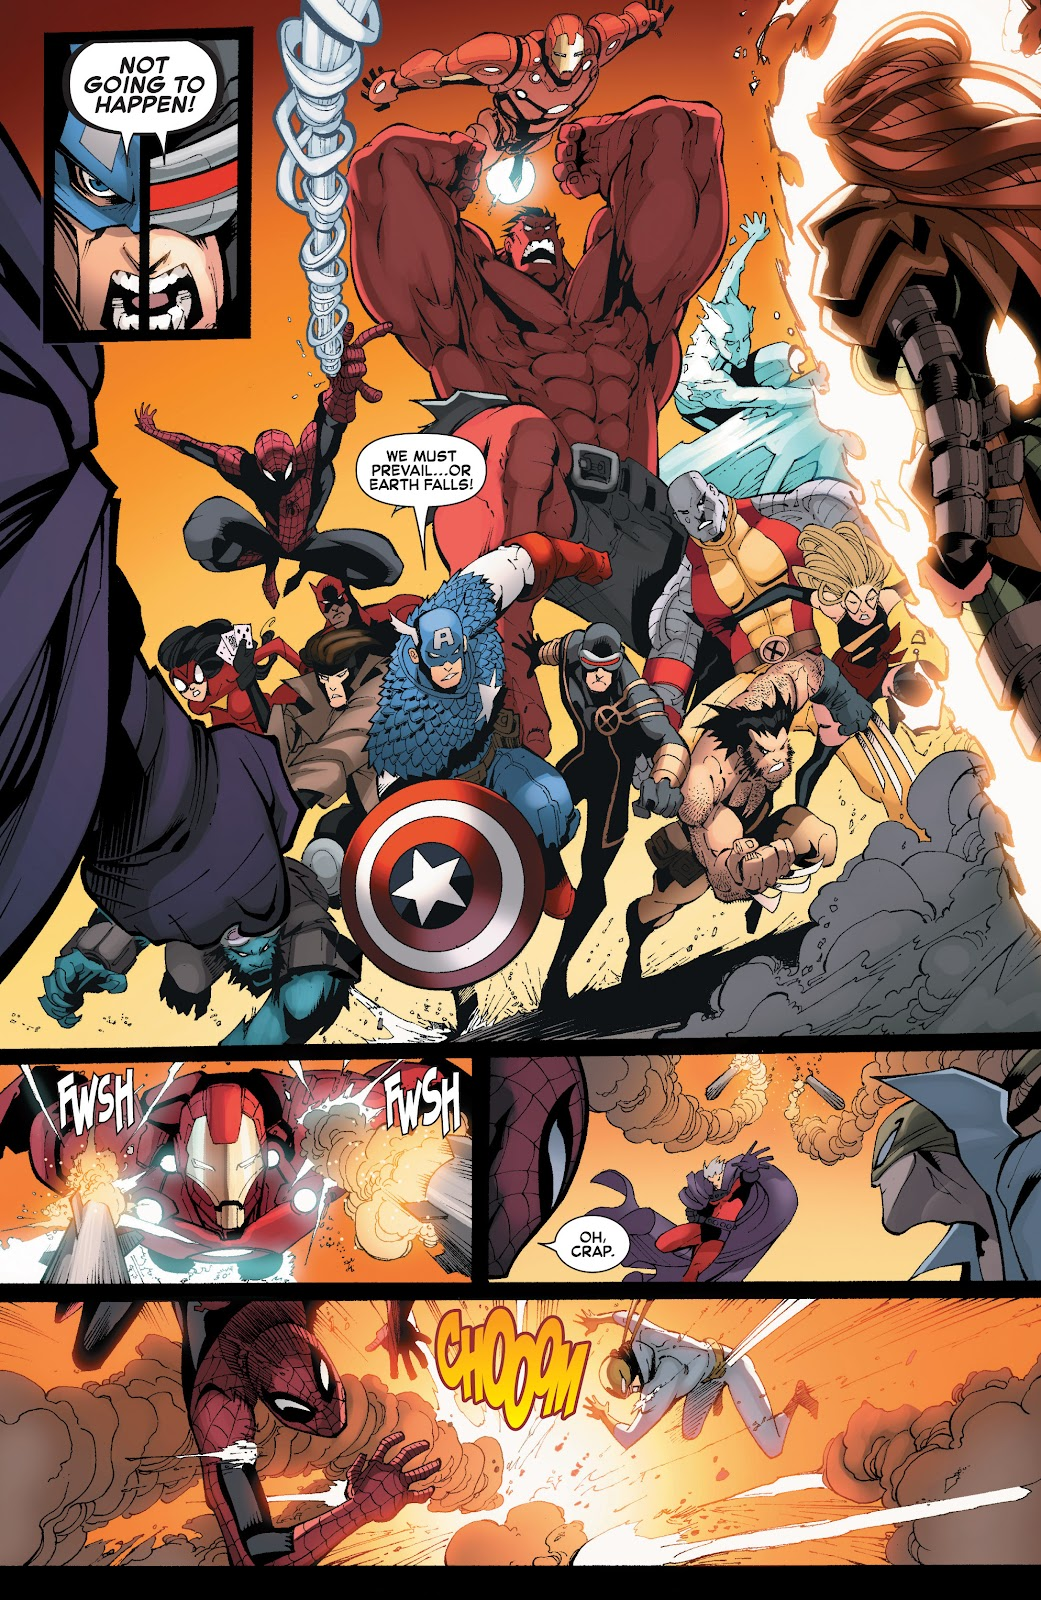 Read online What If? AvX comic -  Issue #4 - 8